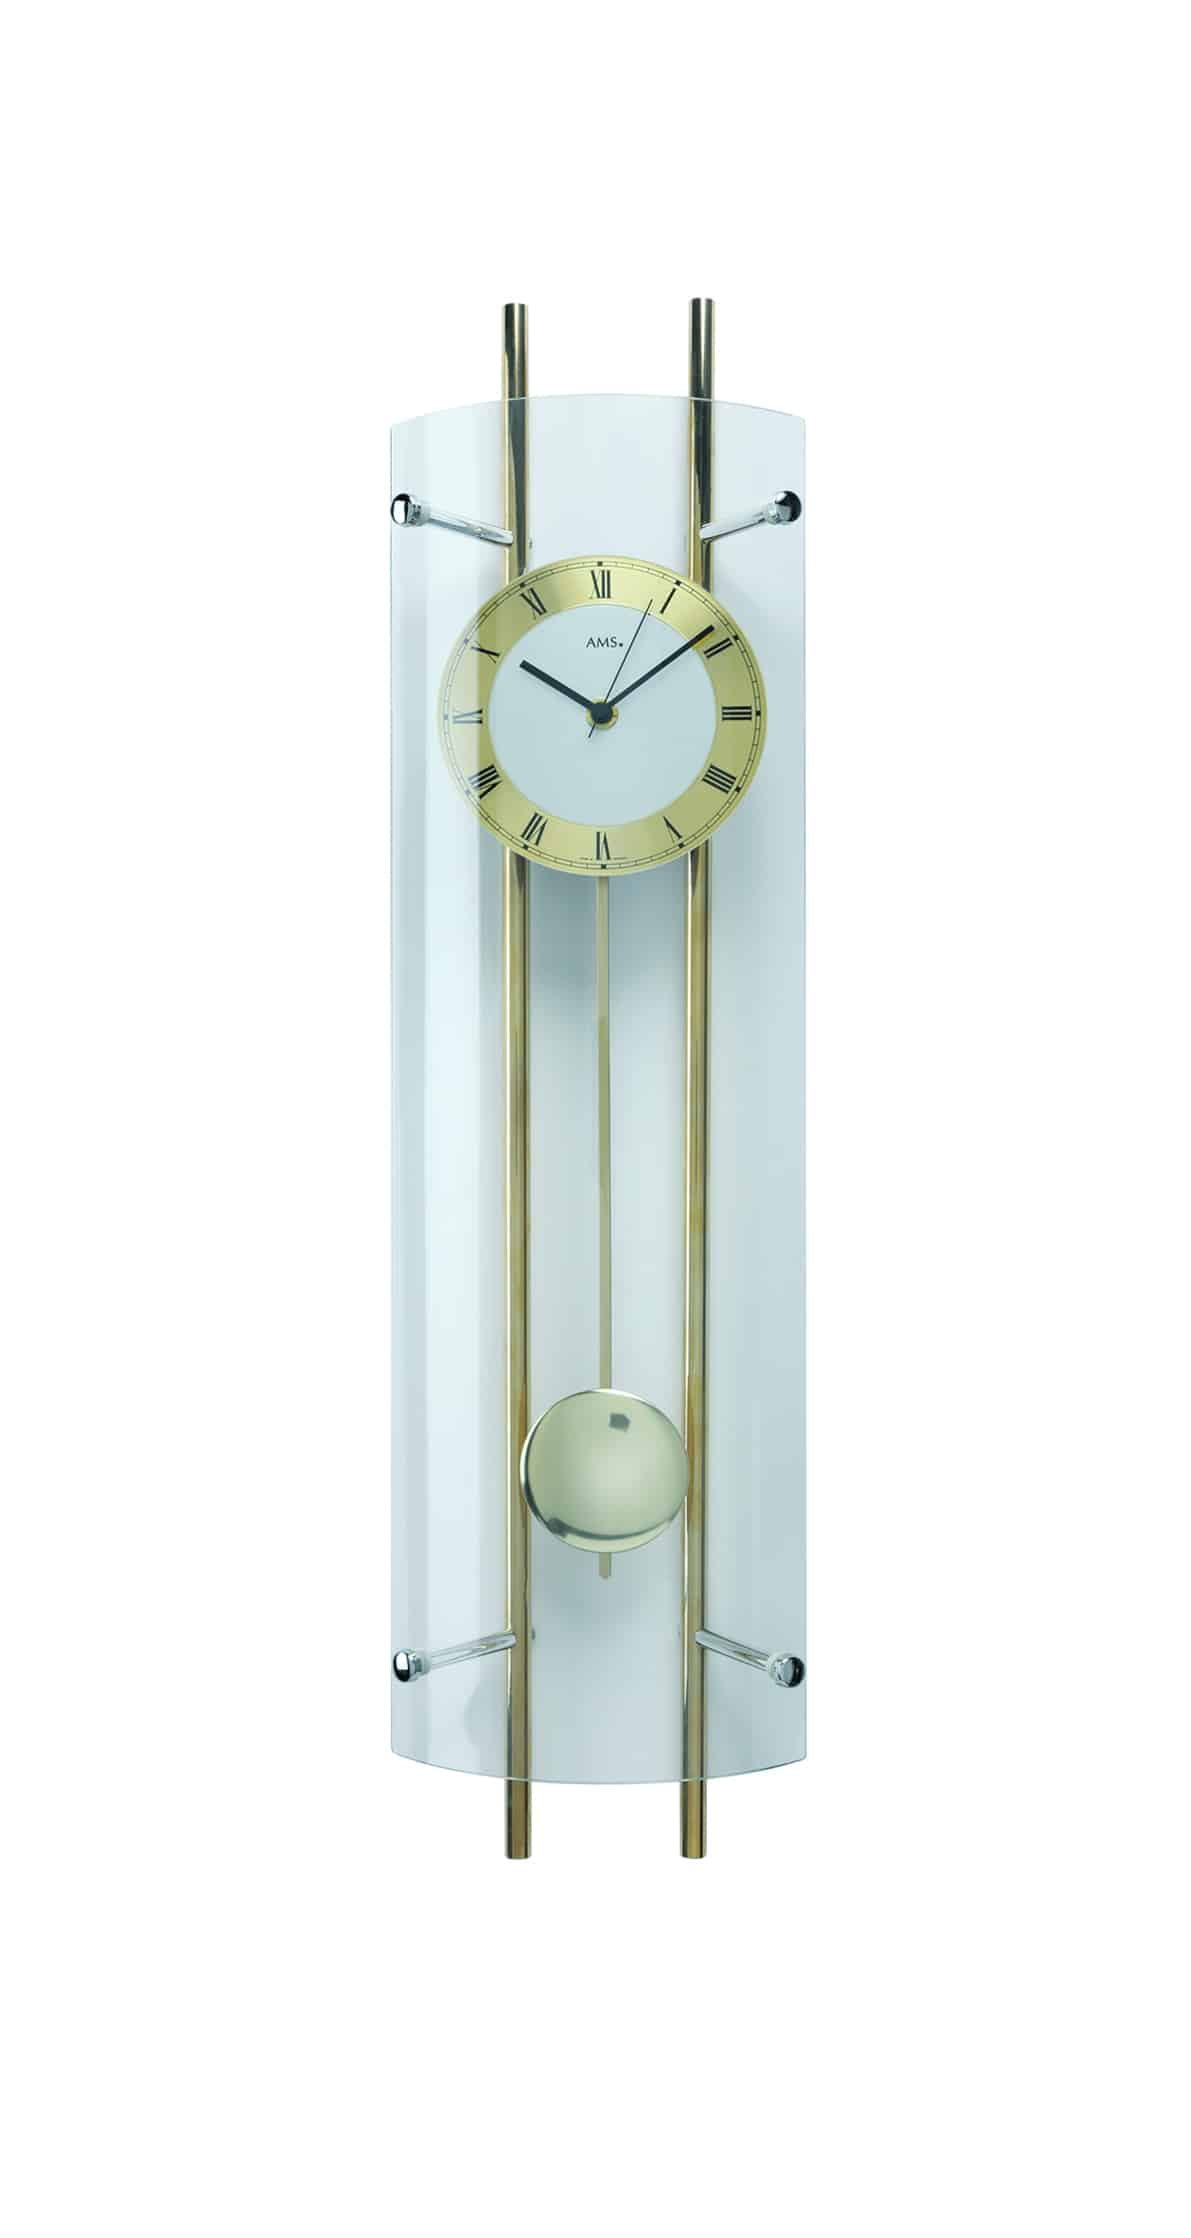 Wall Clocks Glass Ams 5227 Curved Glass Wall Clock Ams Clocks